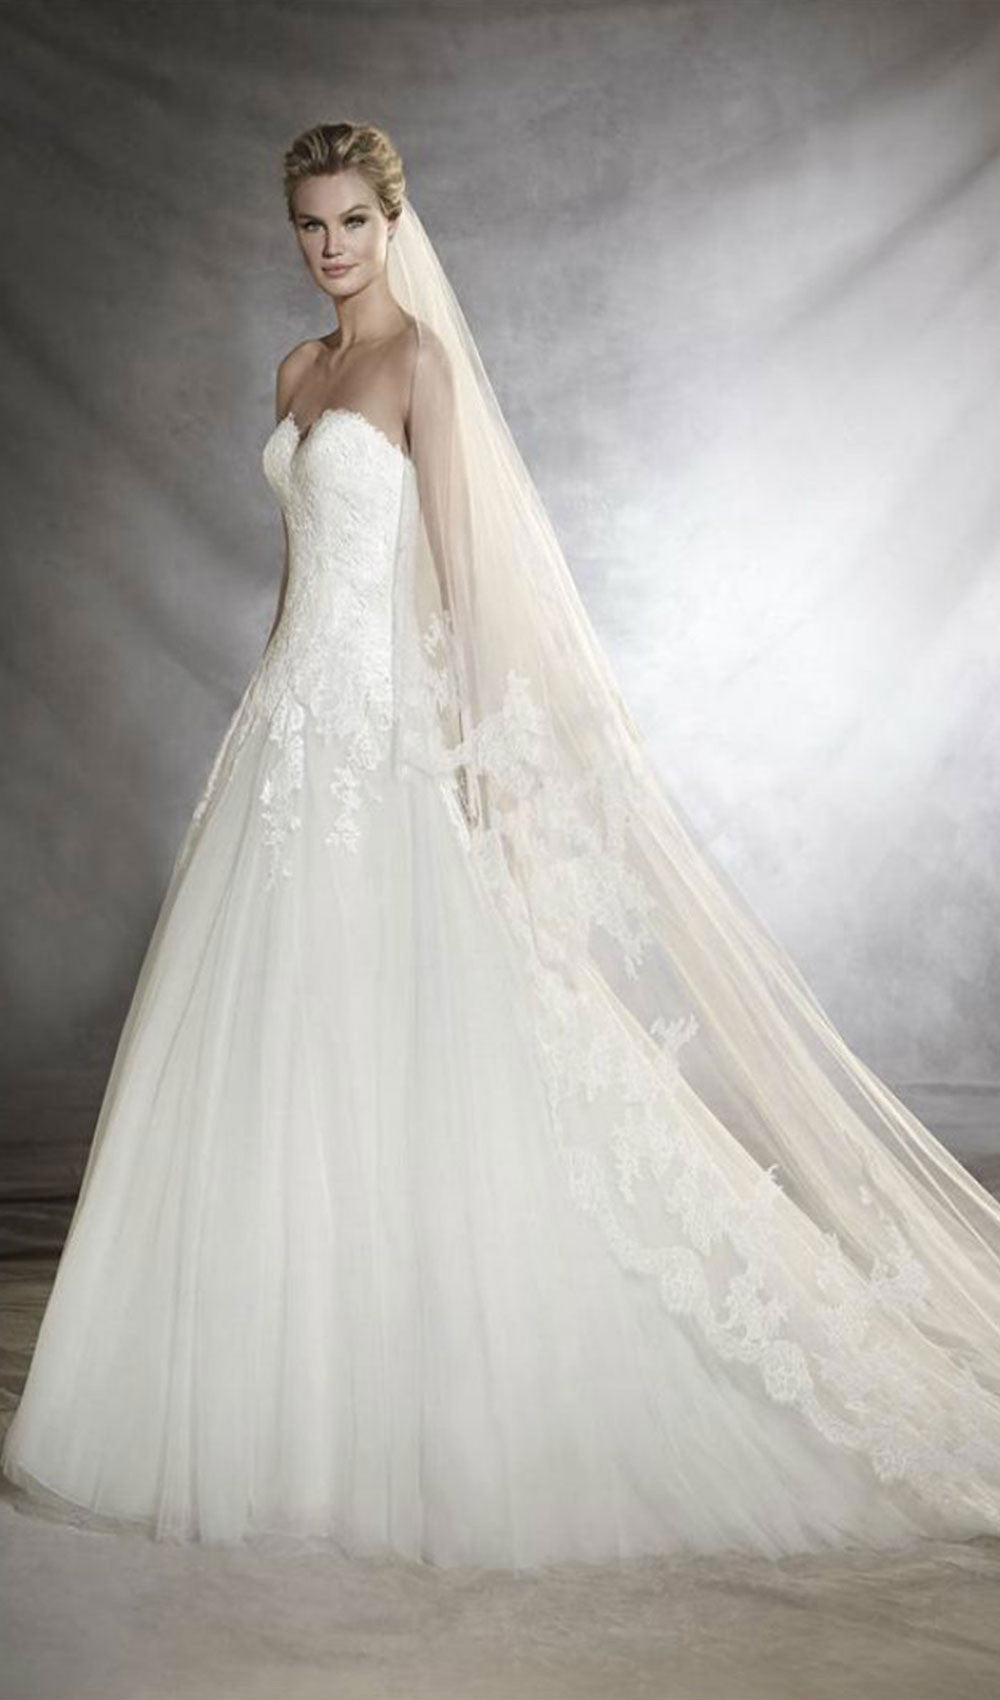 Pronovias - STYLE OBLEA |Schaffer's Bridal in Scottsdale, Arizona